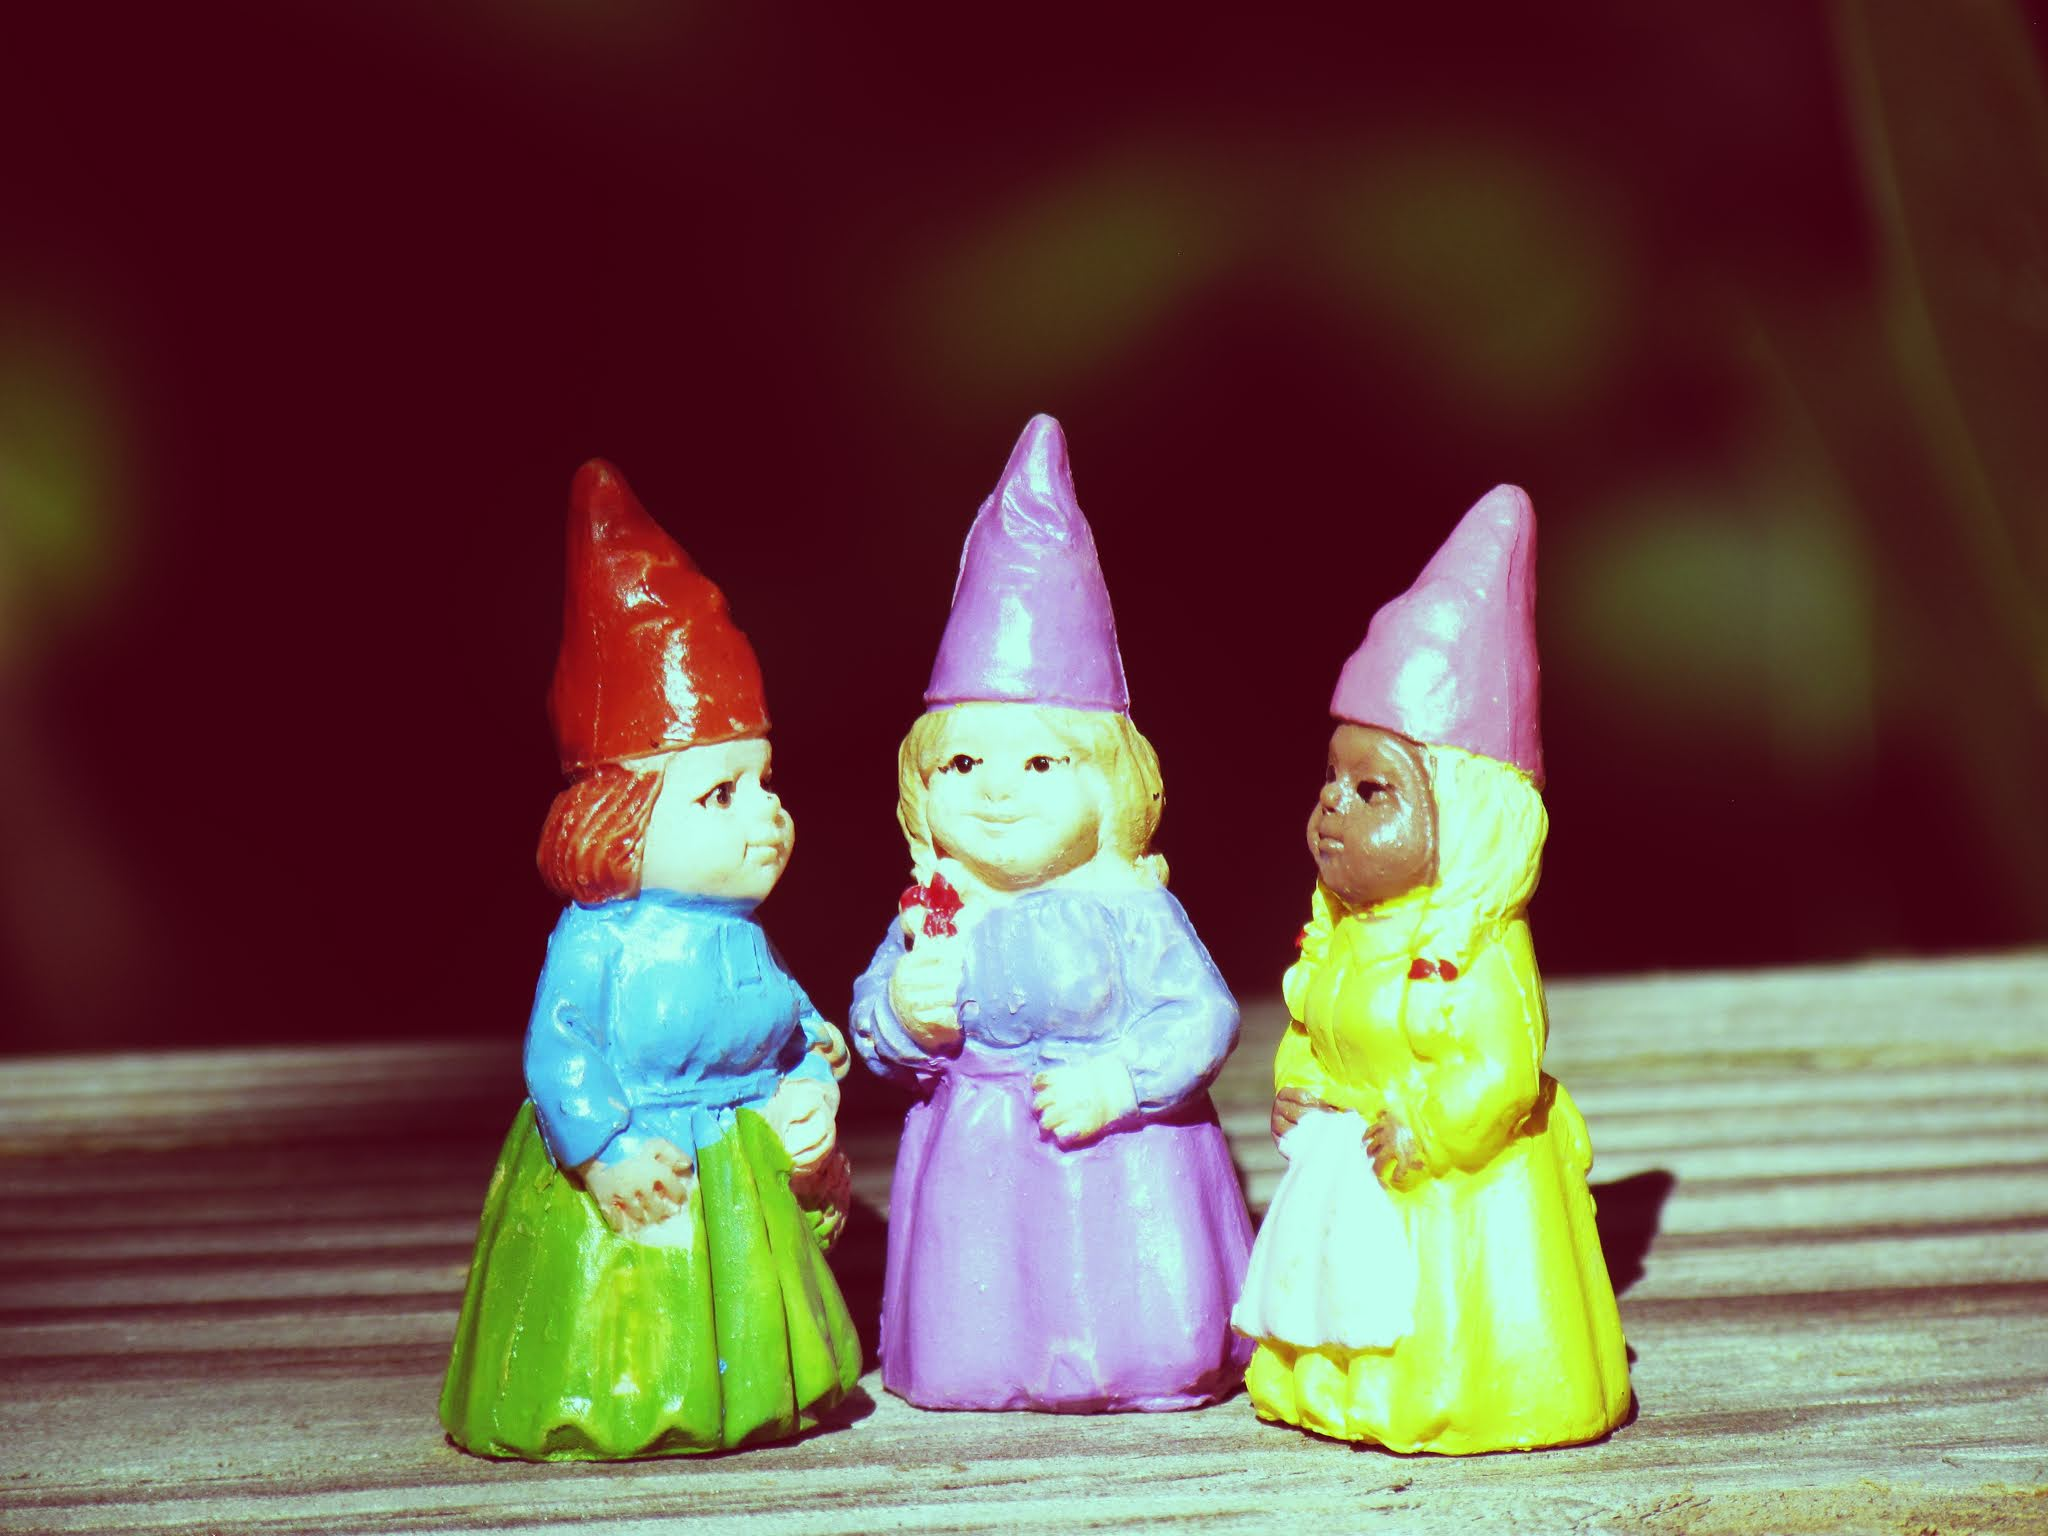 Sisterhood coven, green witch coven, three girl gnome figurines, gnome sisters